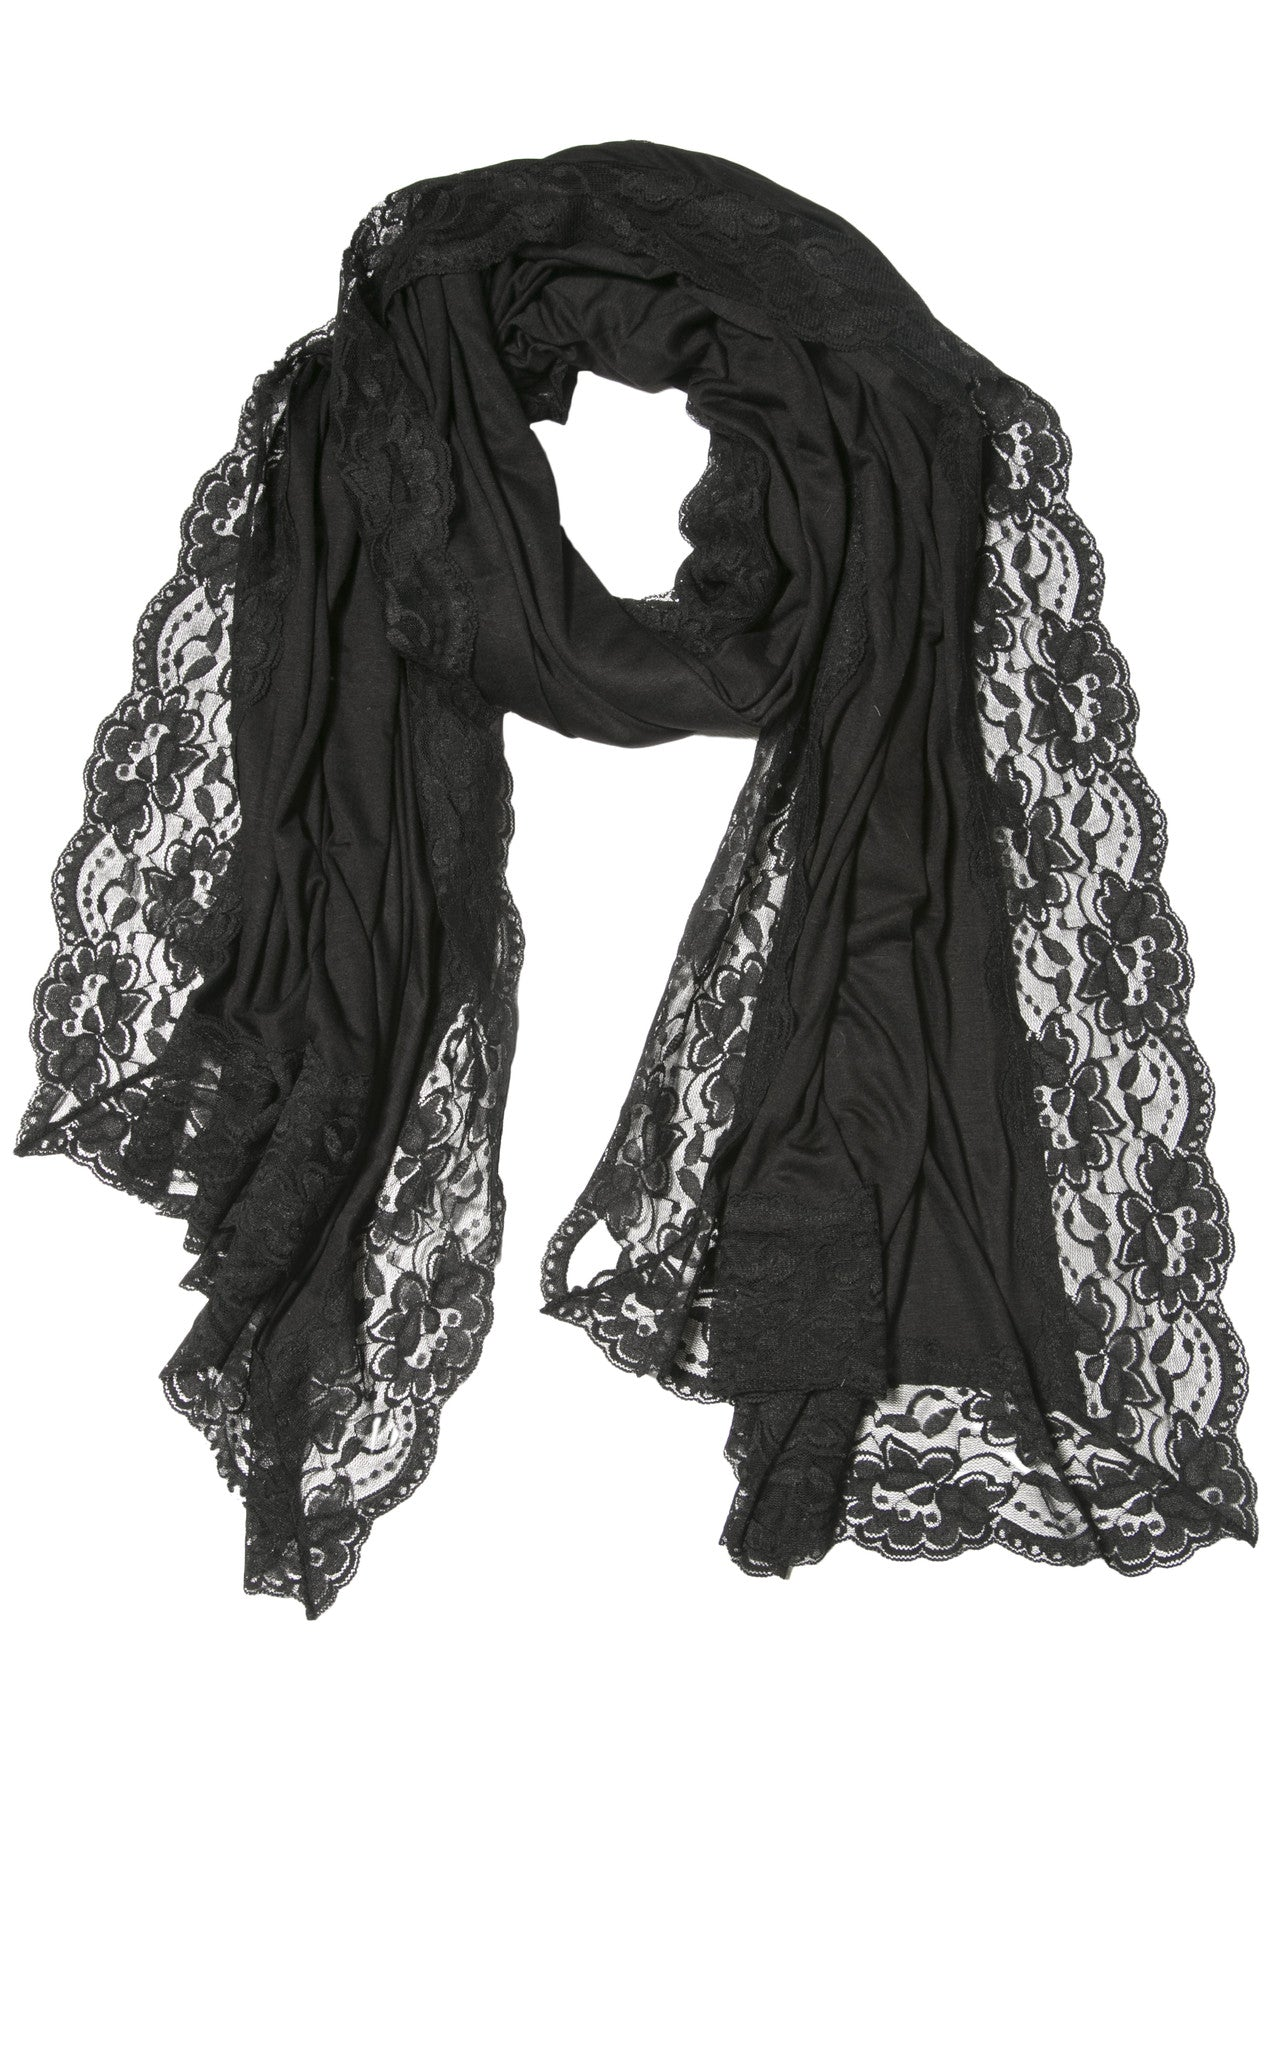 BLACK LACE EDGED WRAP